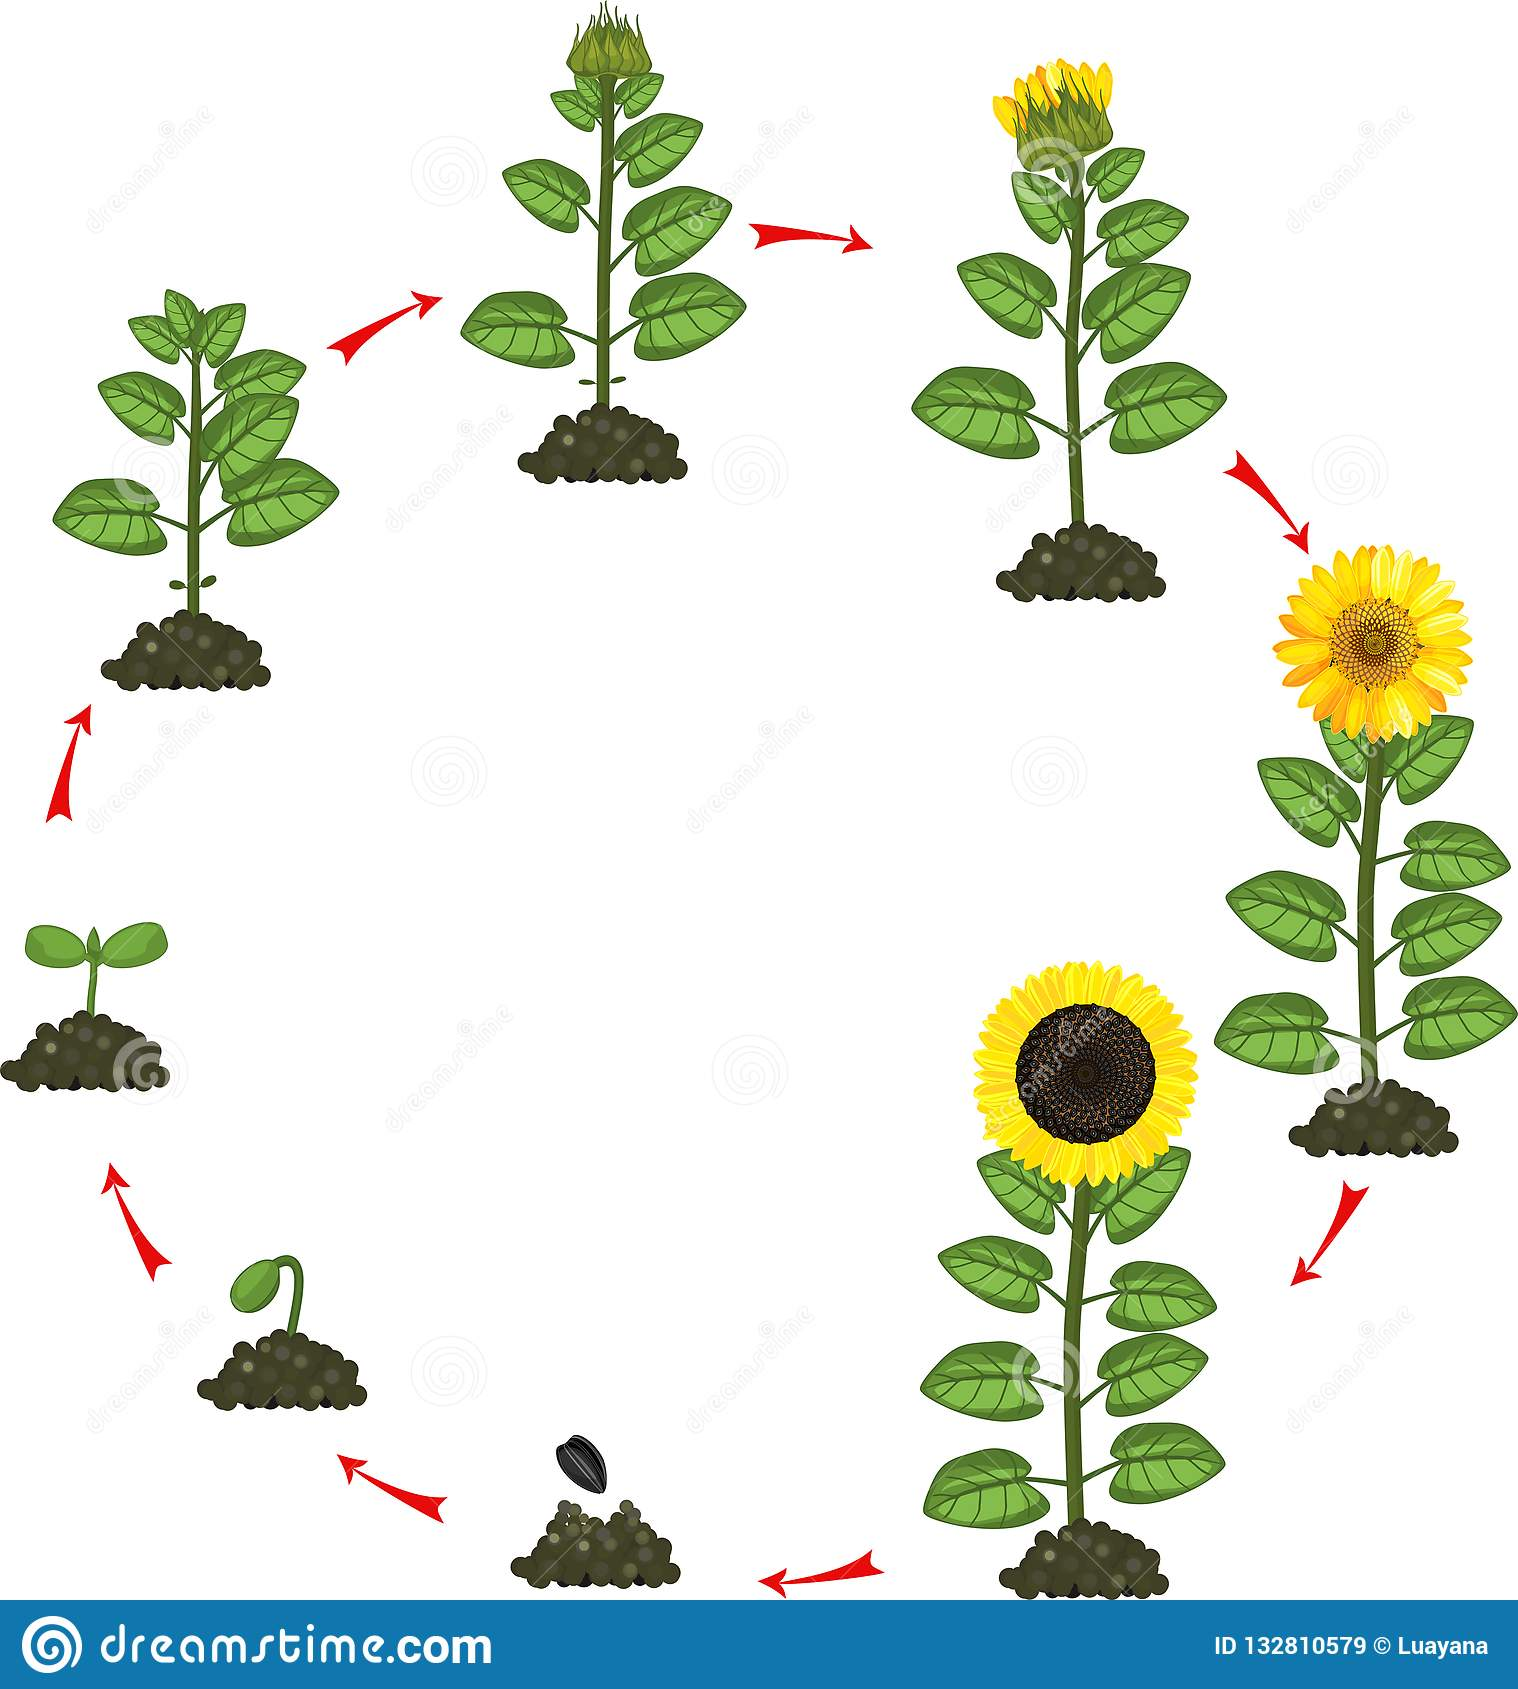 Sunflower Life Cycle. Growth Stages From Seeding To ...